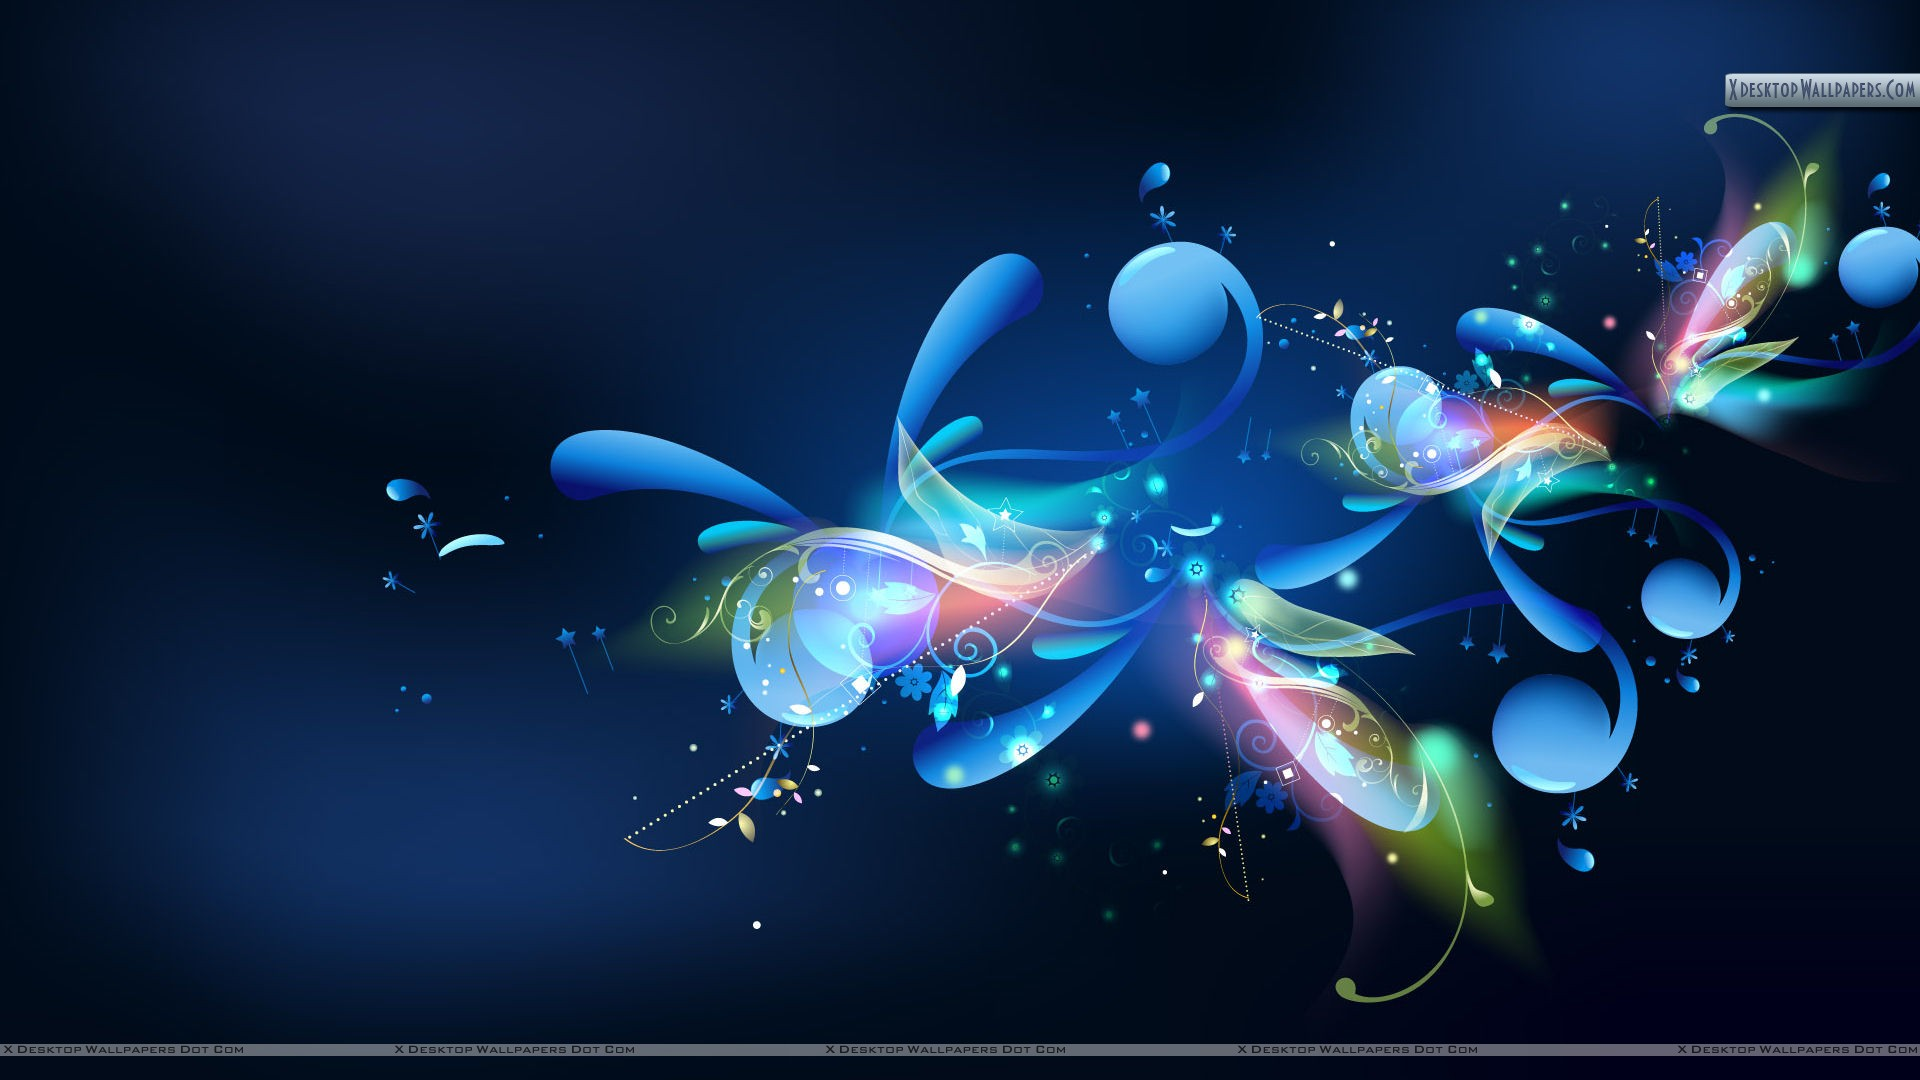 Cool Looking Blue Abstract Download 13 May 2011 View You Are Viewing Wallpaper